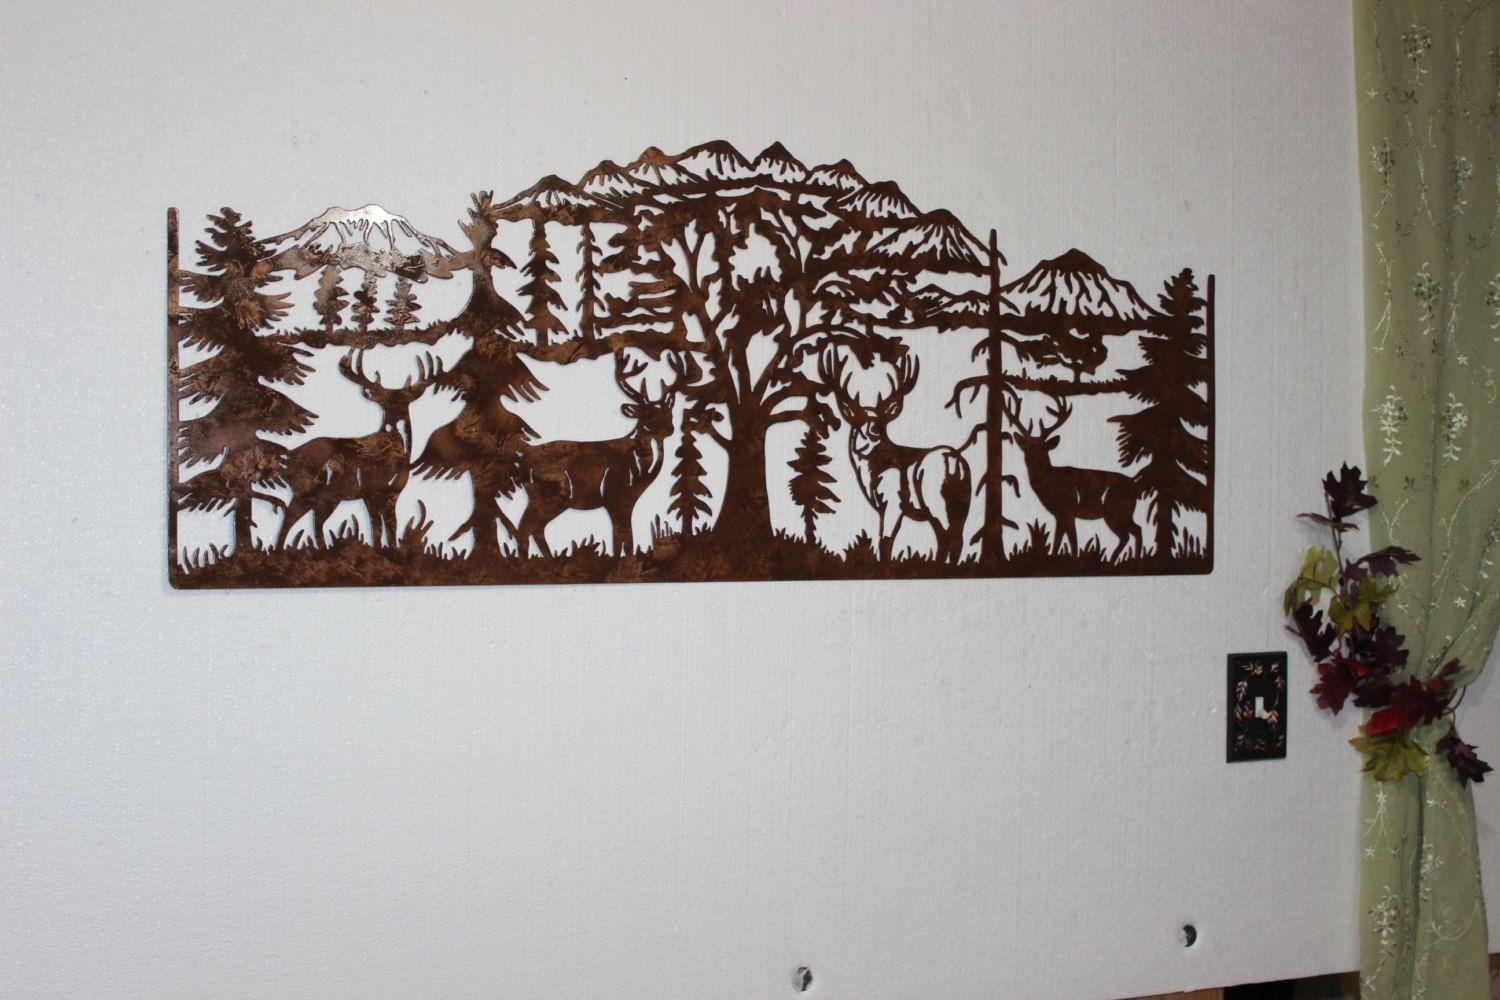 Hand Crafted Deer And Mountain Scene With 4 Majestic Bucks Large with Country Metal Wall Art